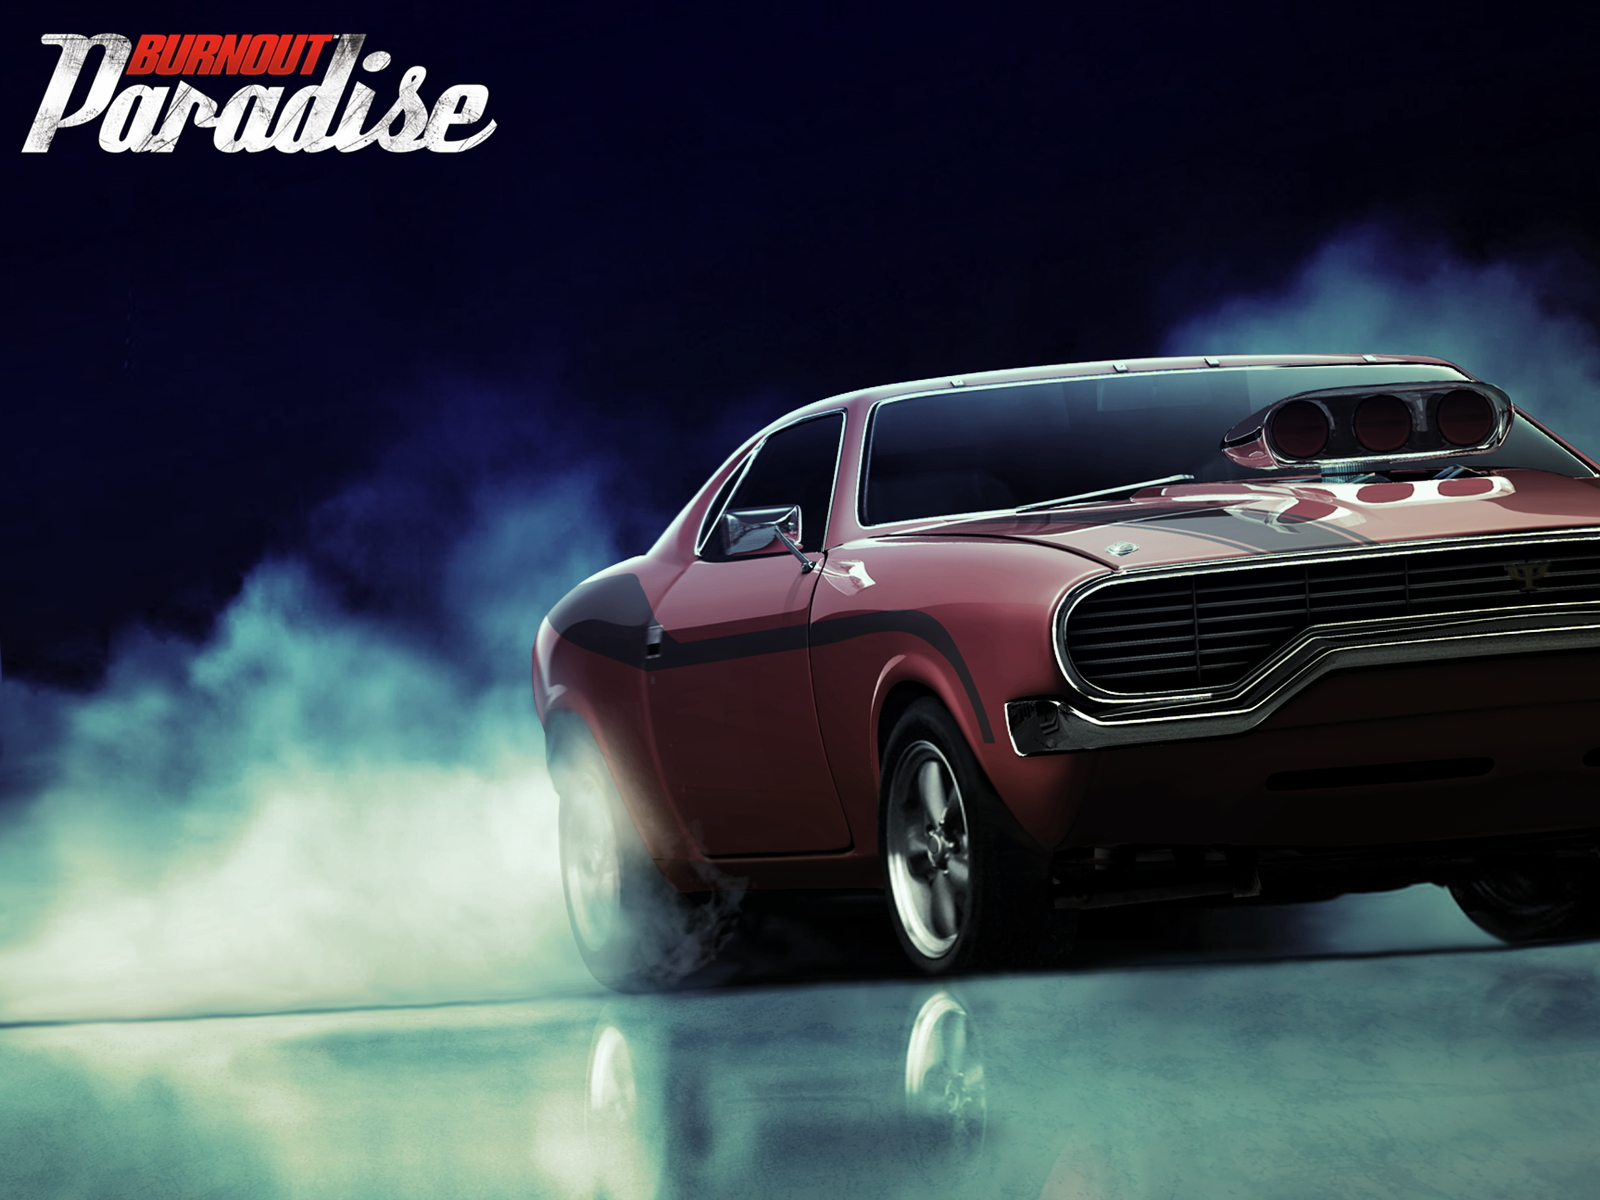 Muscle Car Burnout Paradise Wallpaper